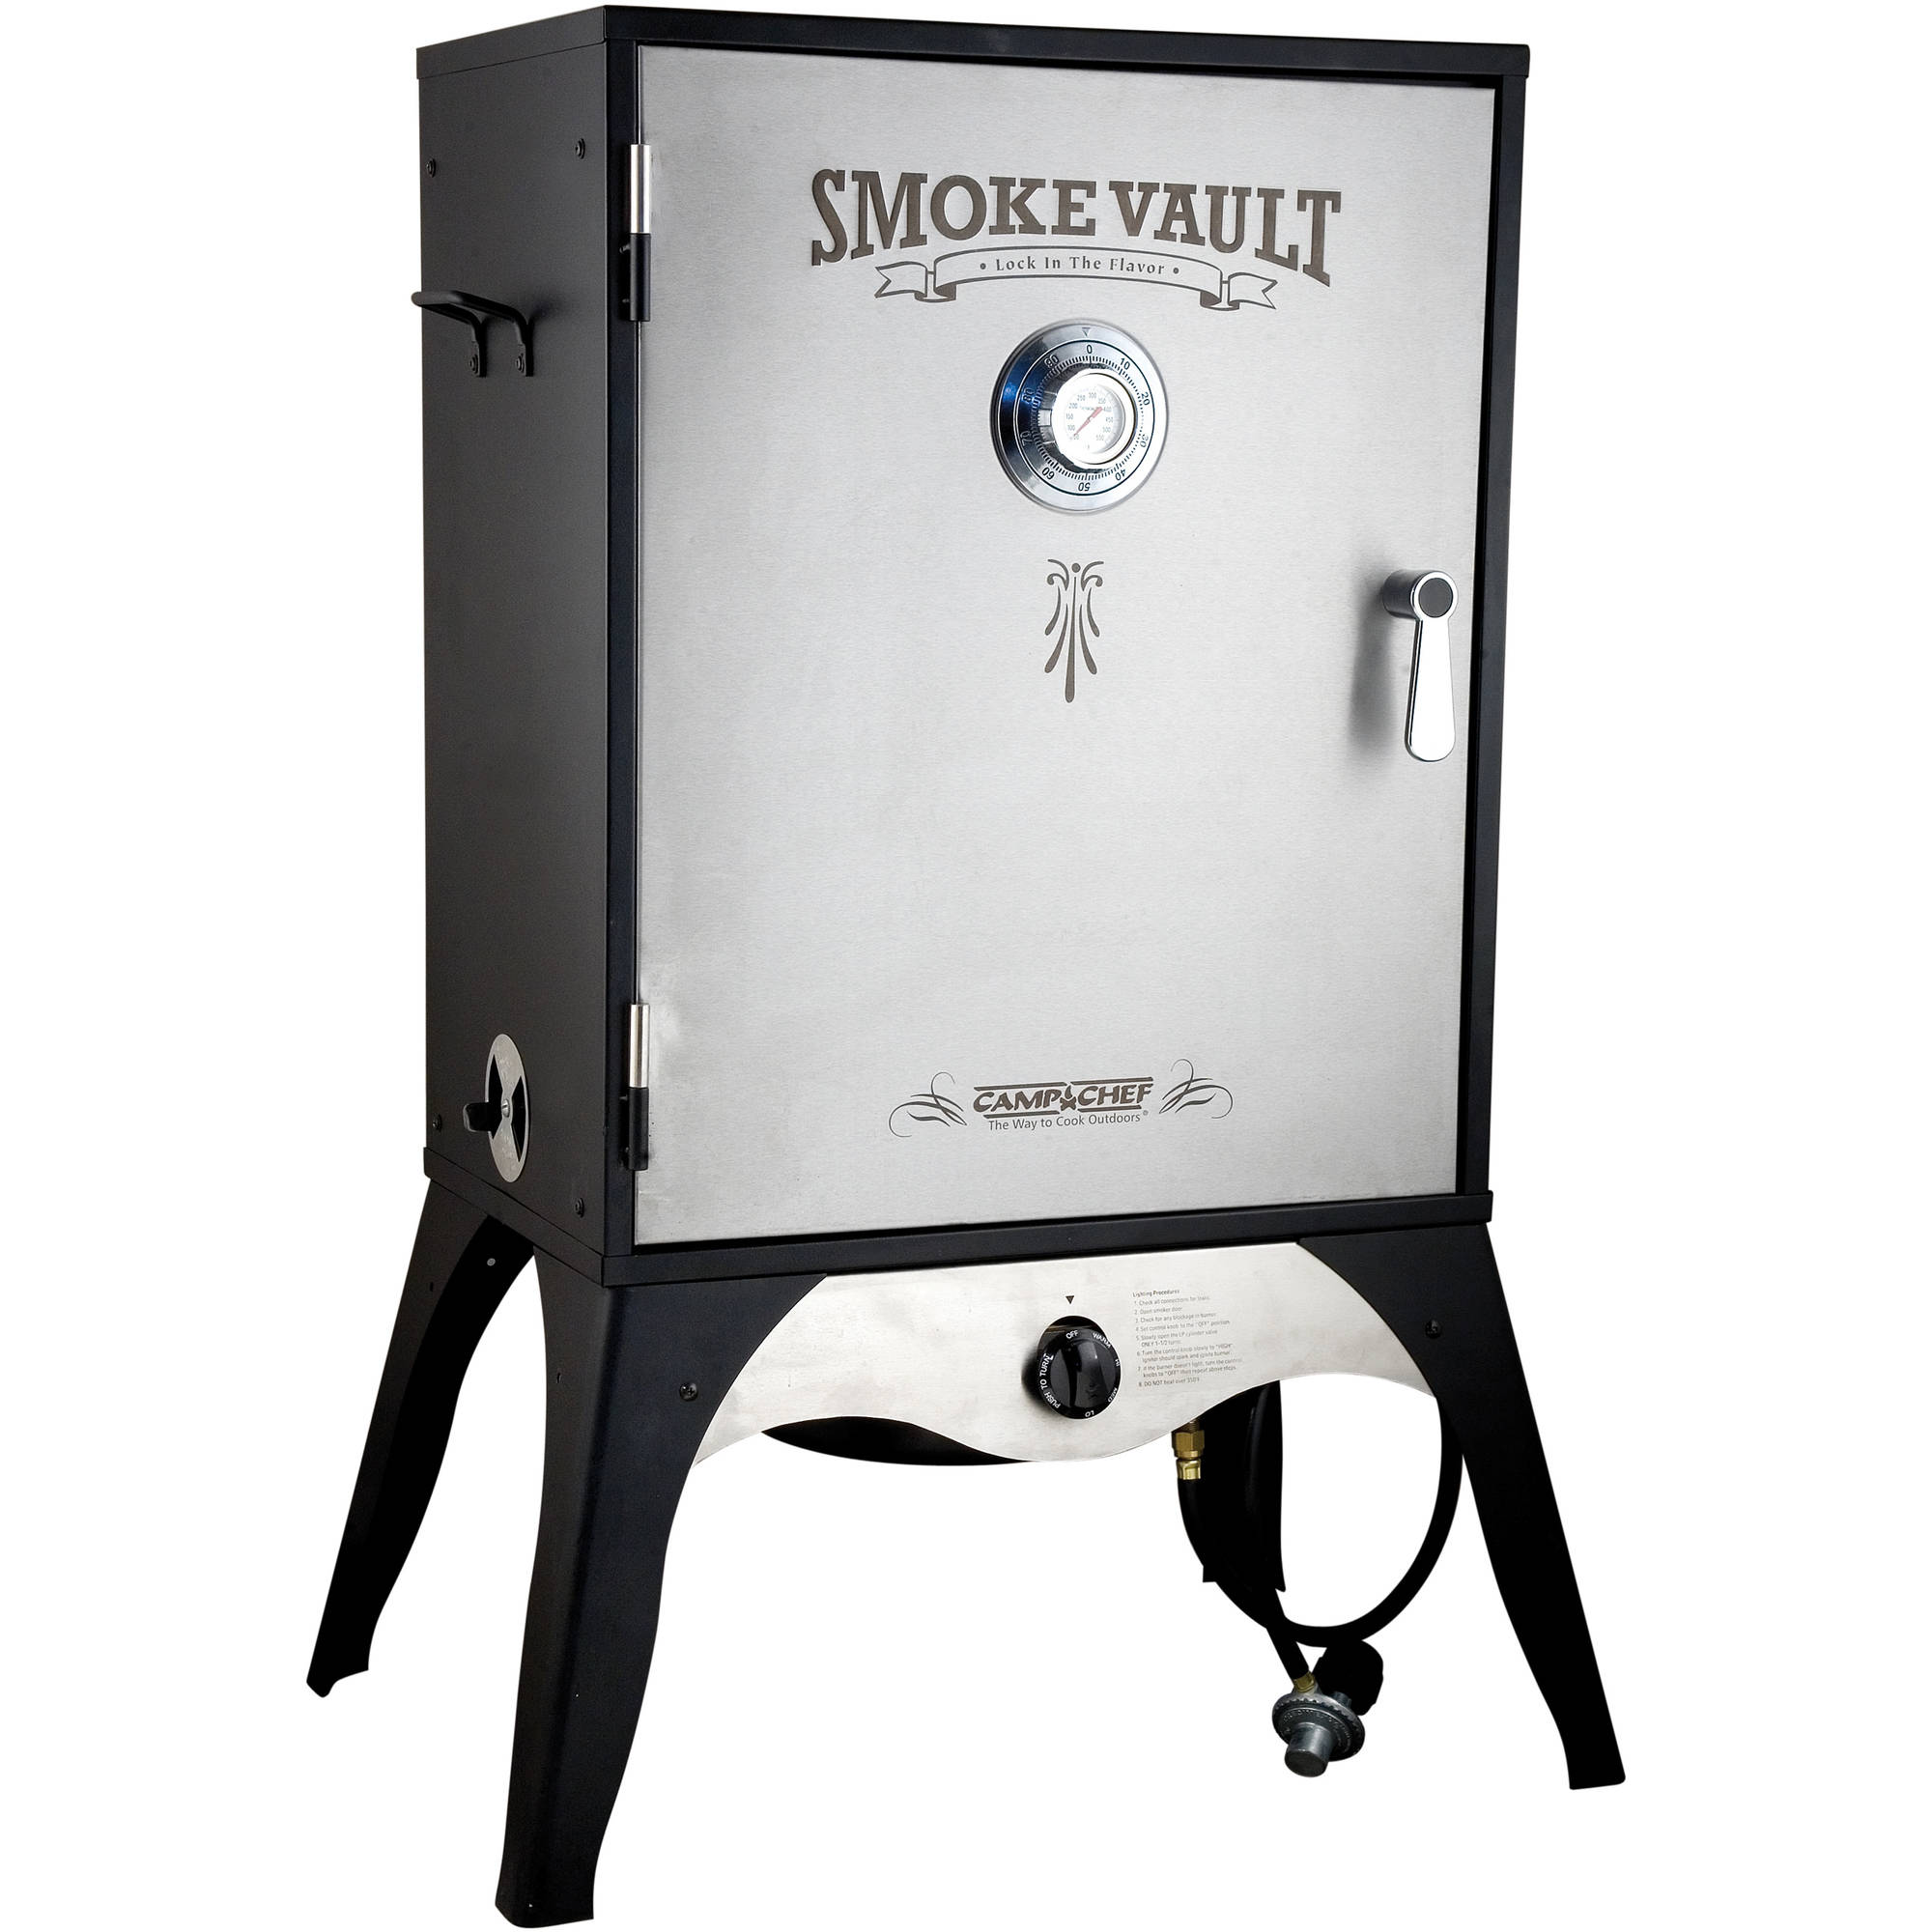 "Camp Chef 24"" Smoke Vault"